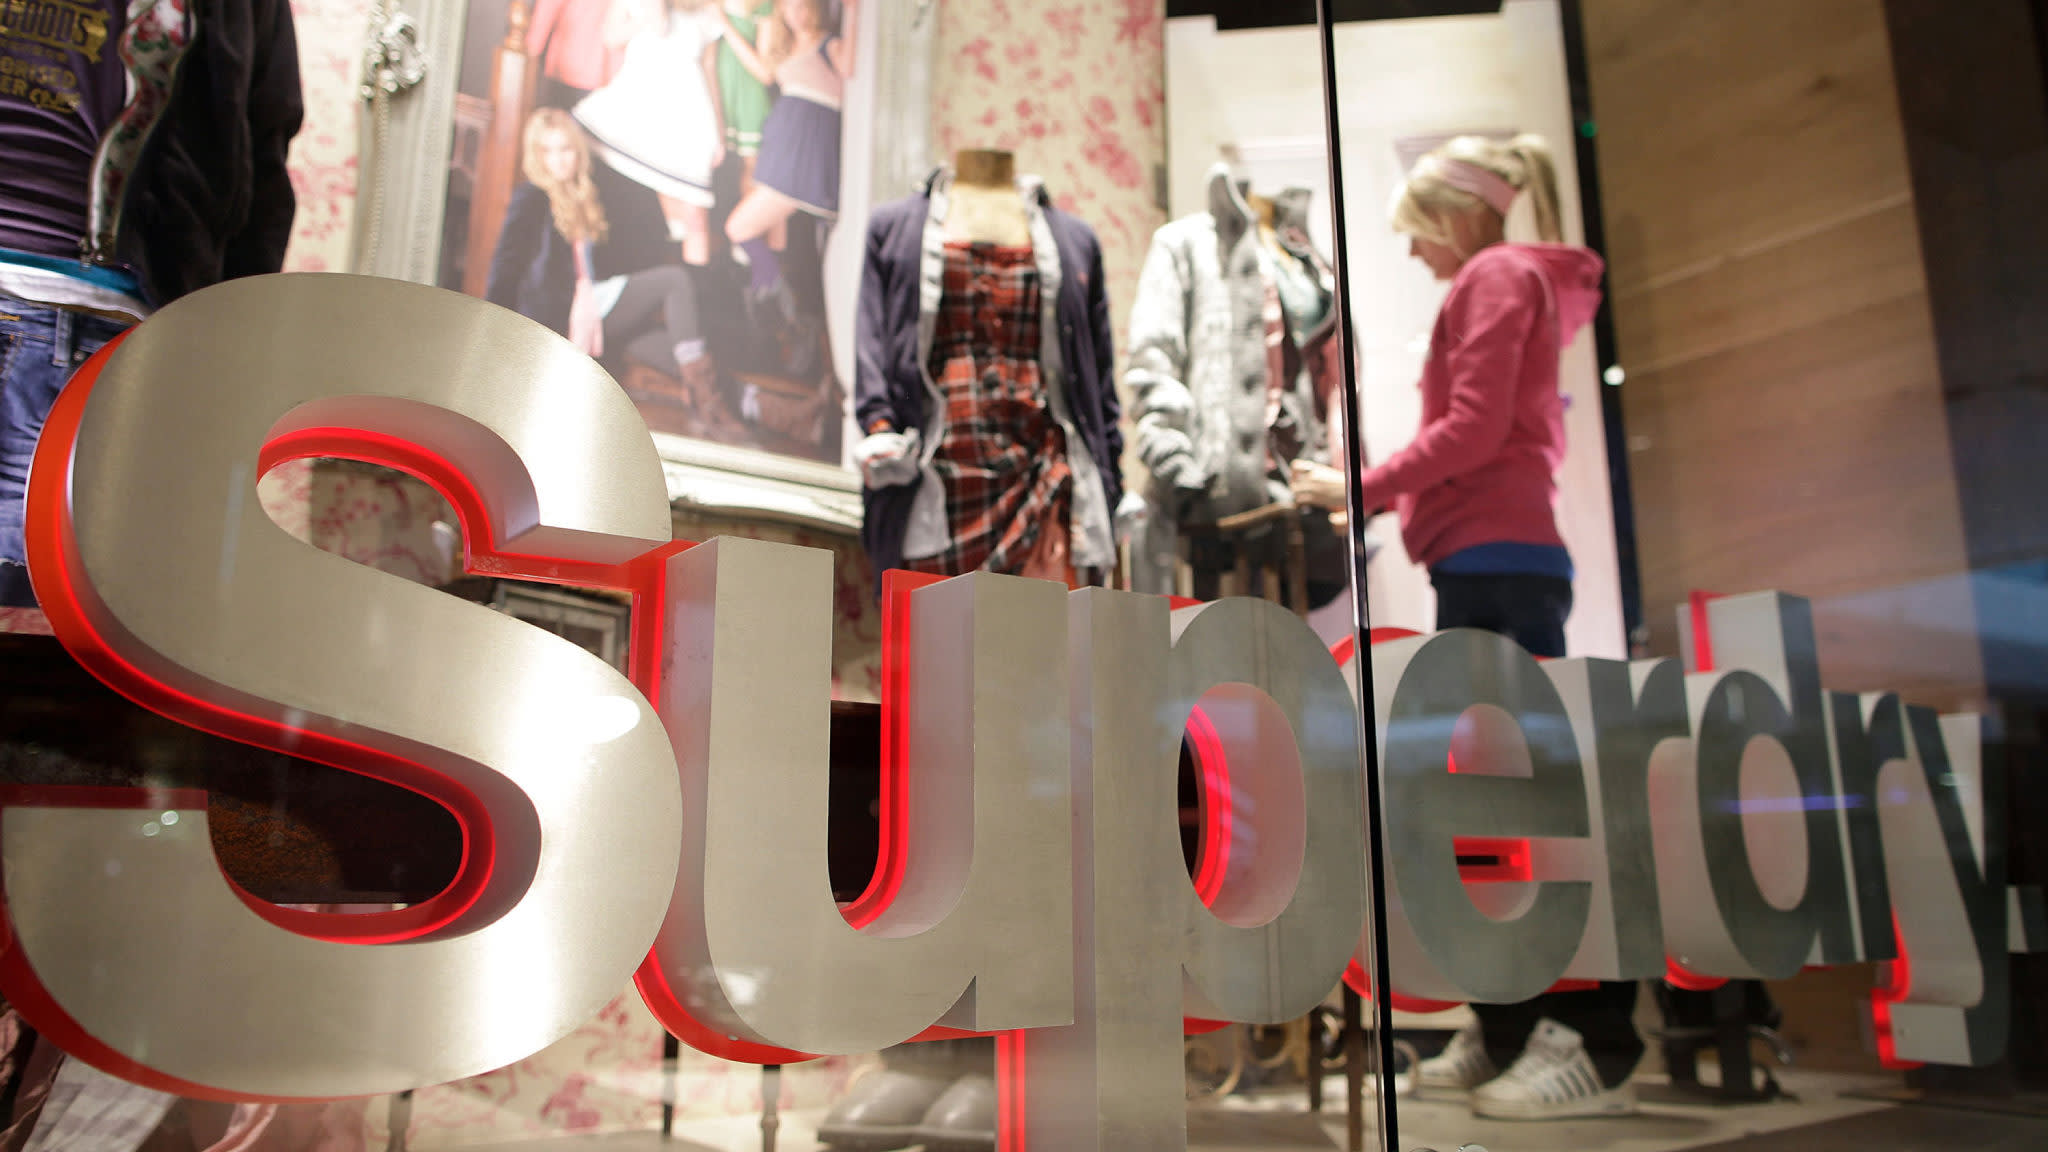 Superdry shares fall 22% after profit warning